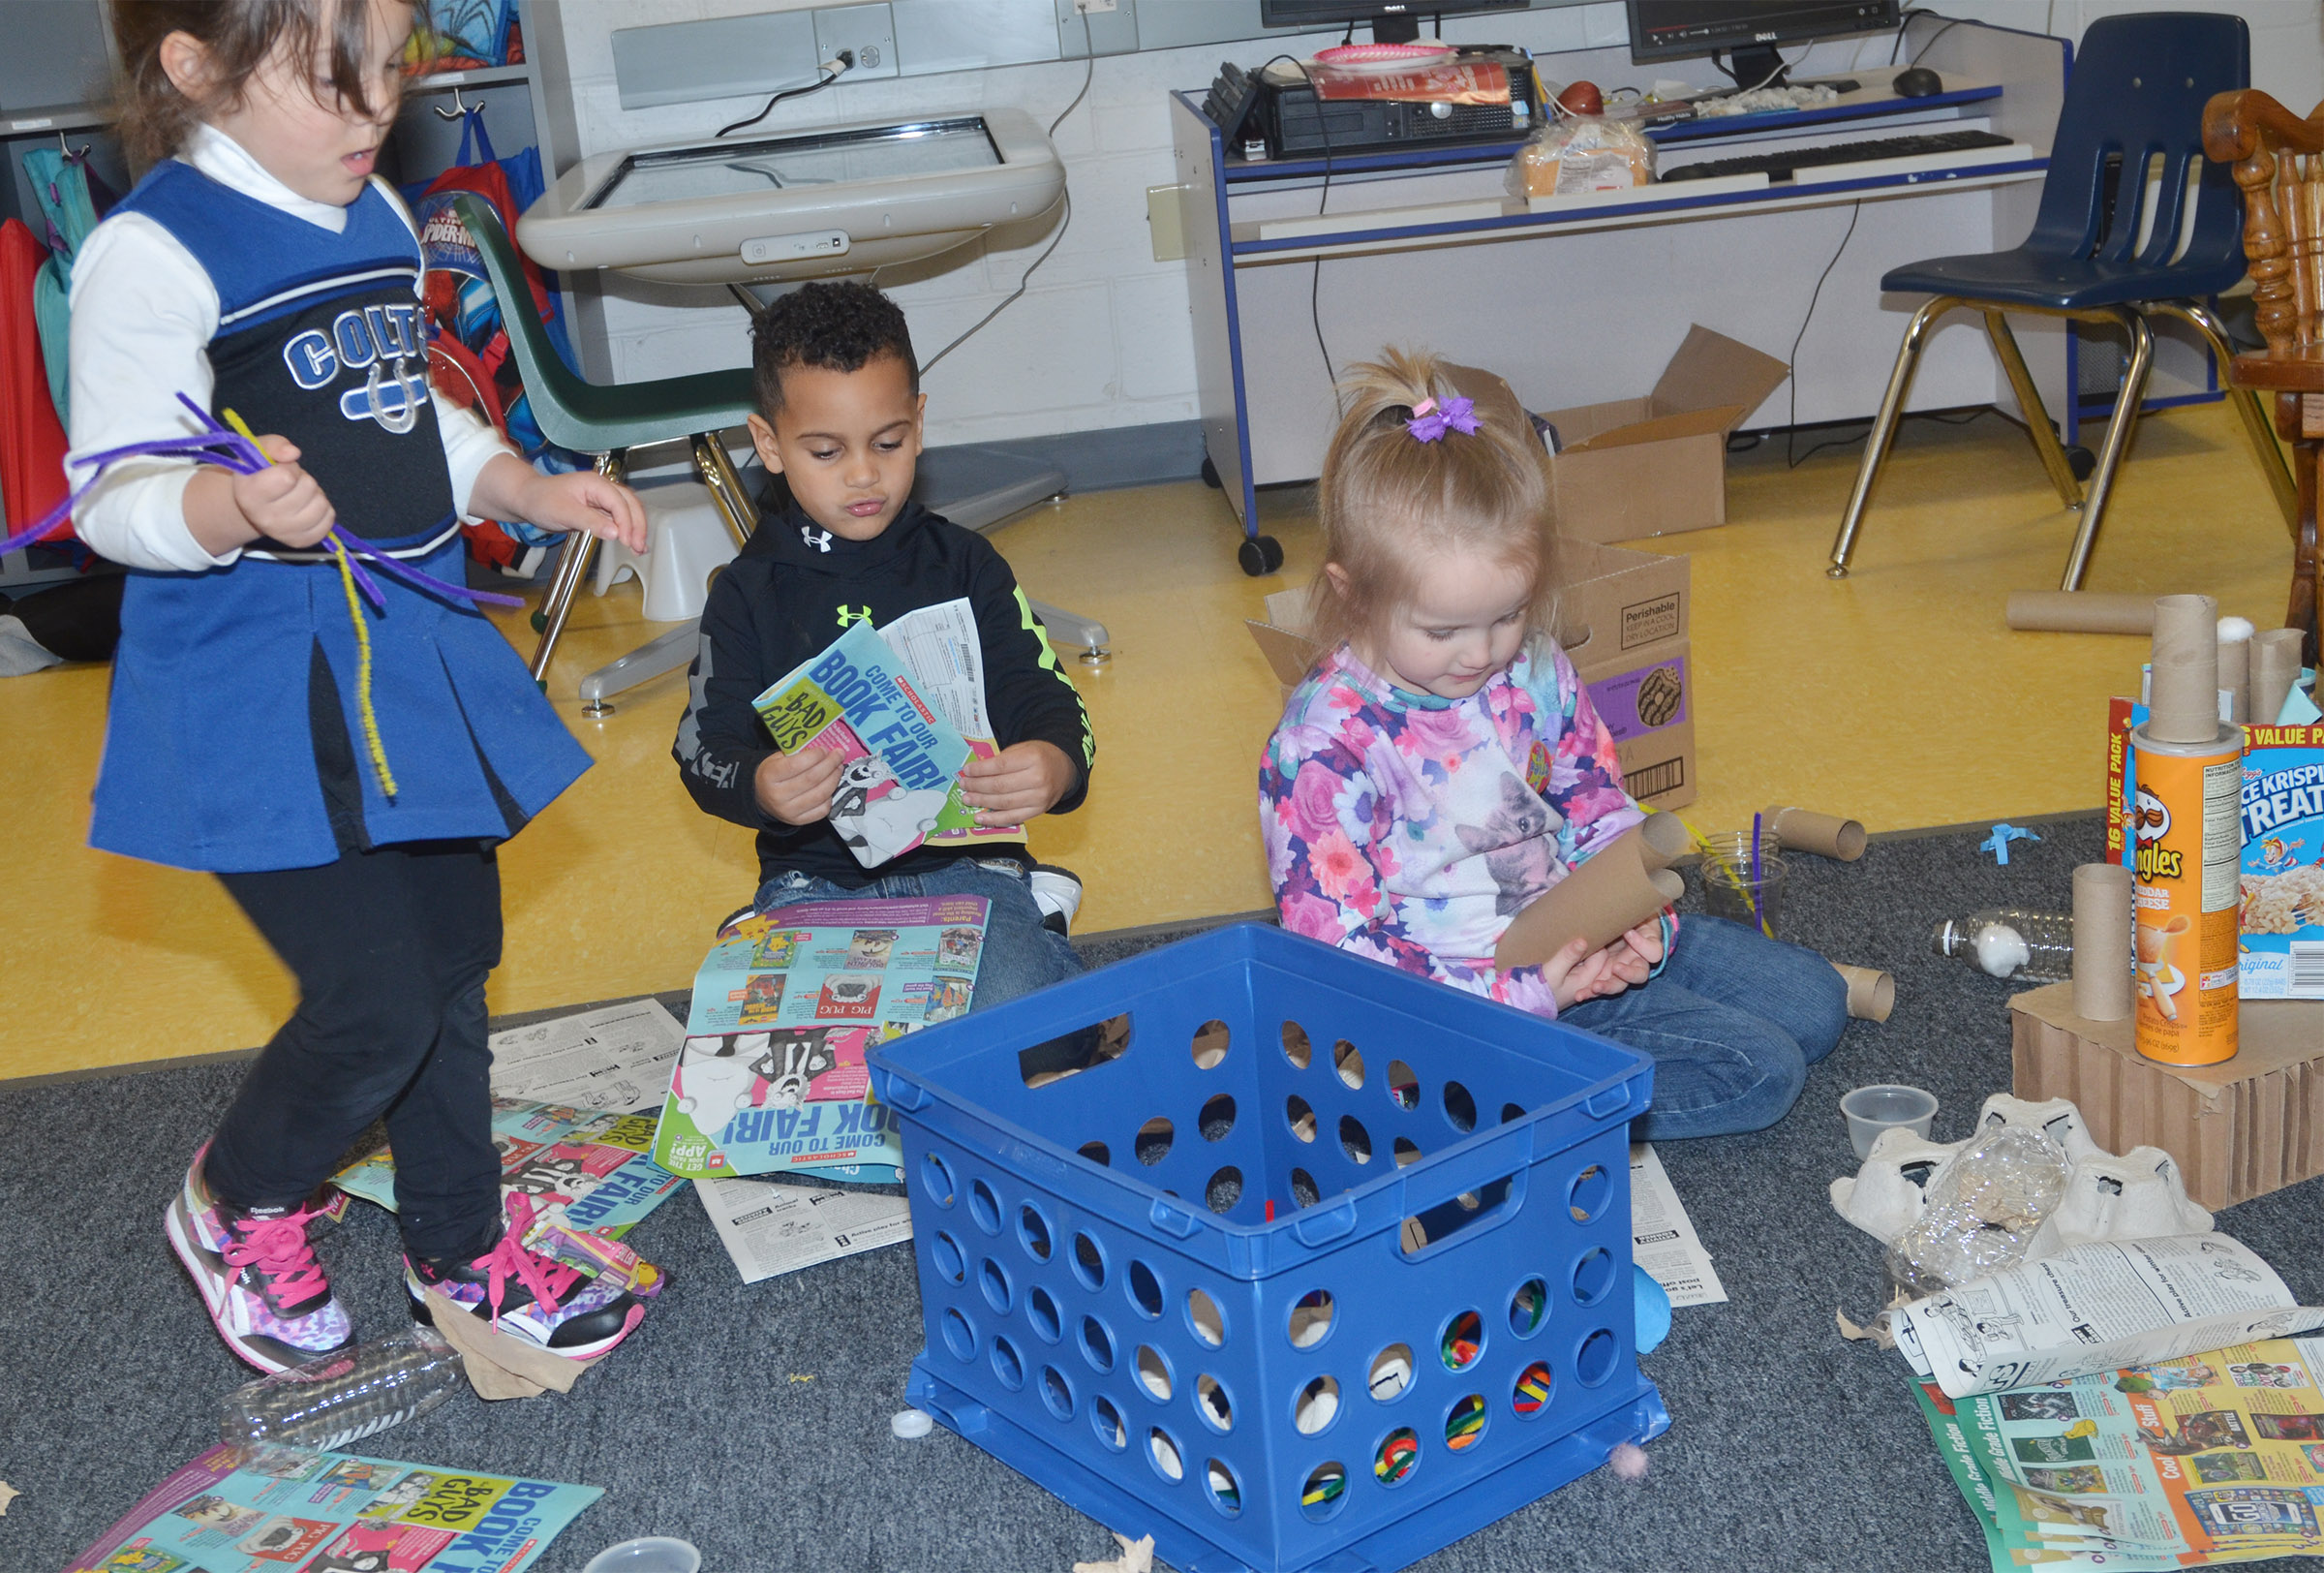 CES preschool students, from left, Addisyn Taylor, Kingston Cowherd and Trinity Dye build.